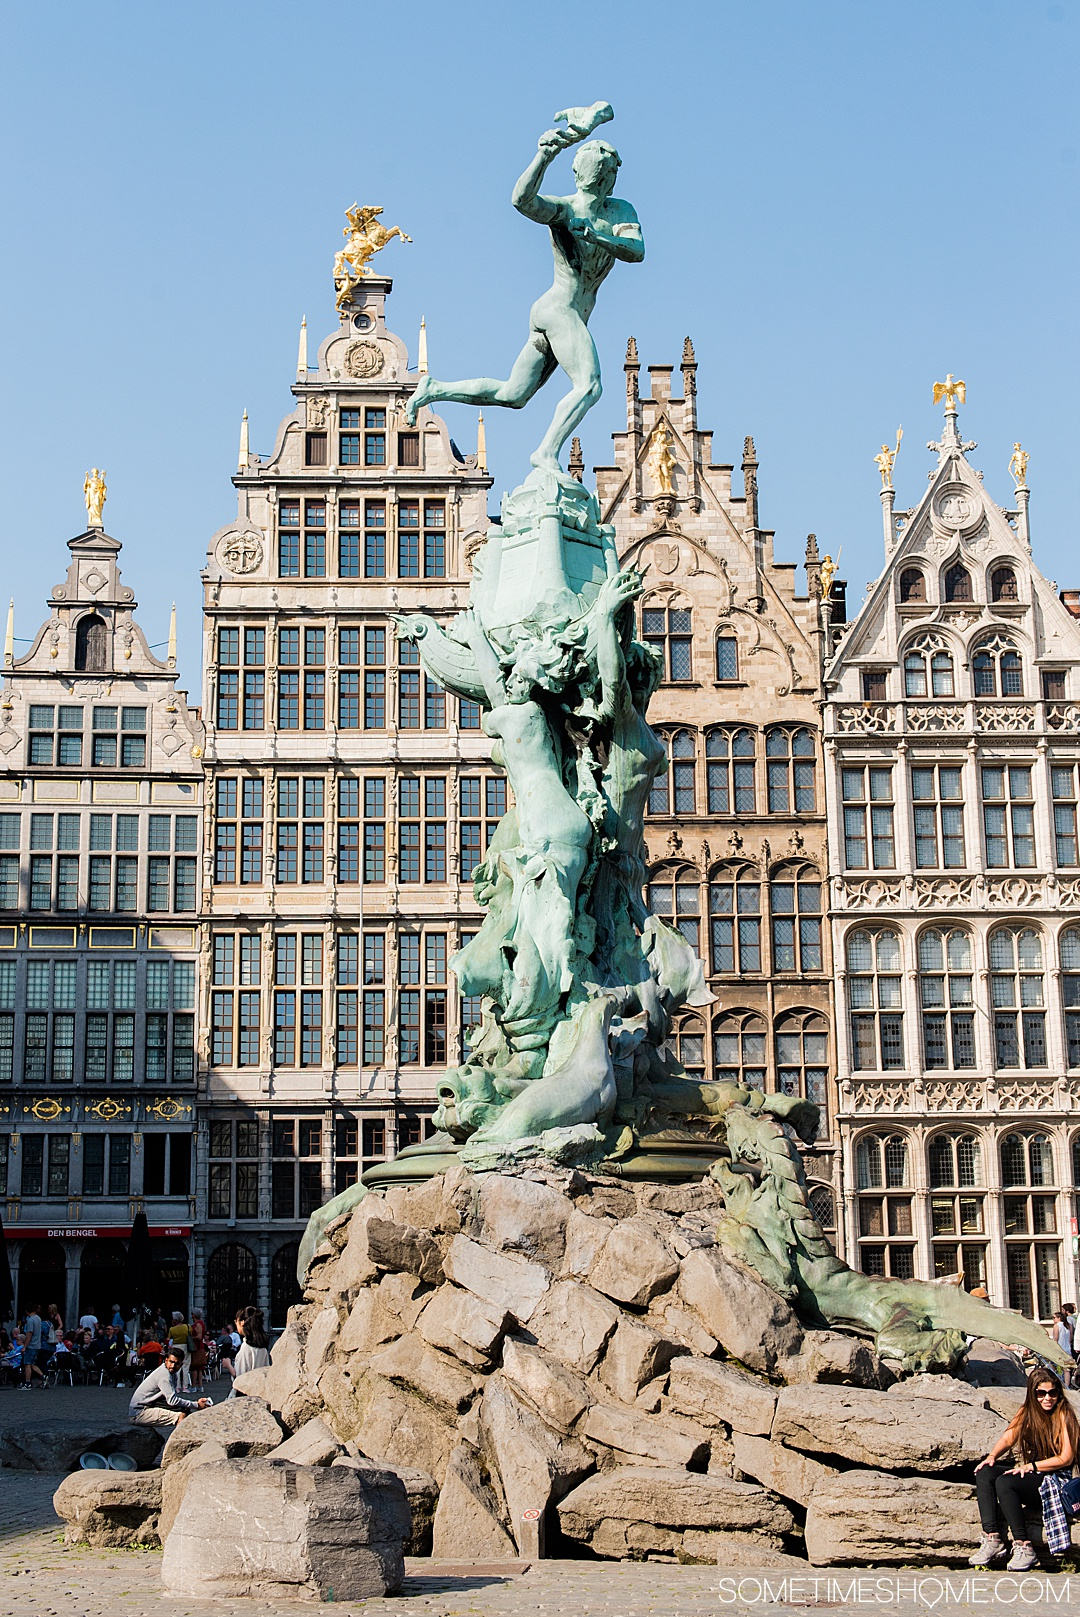 Amsterdam river cruise in The Netherlands and beautiful Belgium with tulips in bloom and a lot of charming European port cities to visit you wouldn't otherwise think of. We traveled with Emerald Waterways for 8 days of destinations and exploring in Europe day and night, with adventure to explore on the ships and in each city. #SometimesHome #SometimesHomeEurope #AmsterdamRiverCruise #EuropeanRiverCruise #AmsterdamTulips #Antwerp #BelgiumRiverCruise